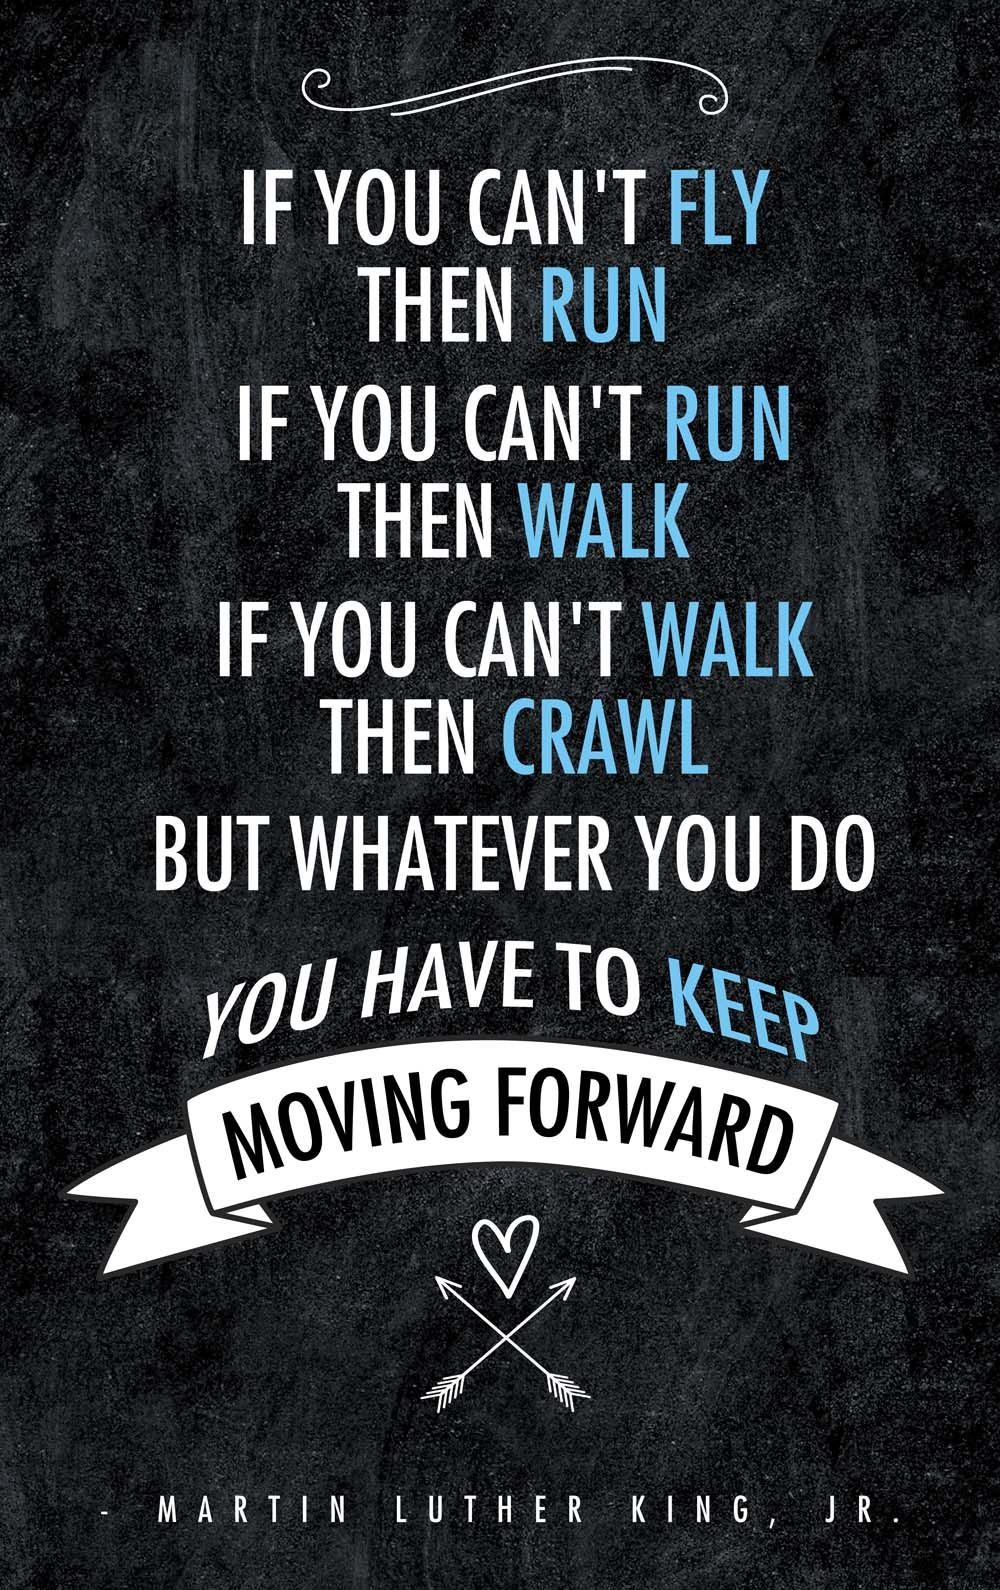 Moving Forward Quotes Inspiration Keep Moving Forward #quote #martinlutherking  Inspiration Quotes